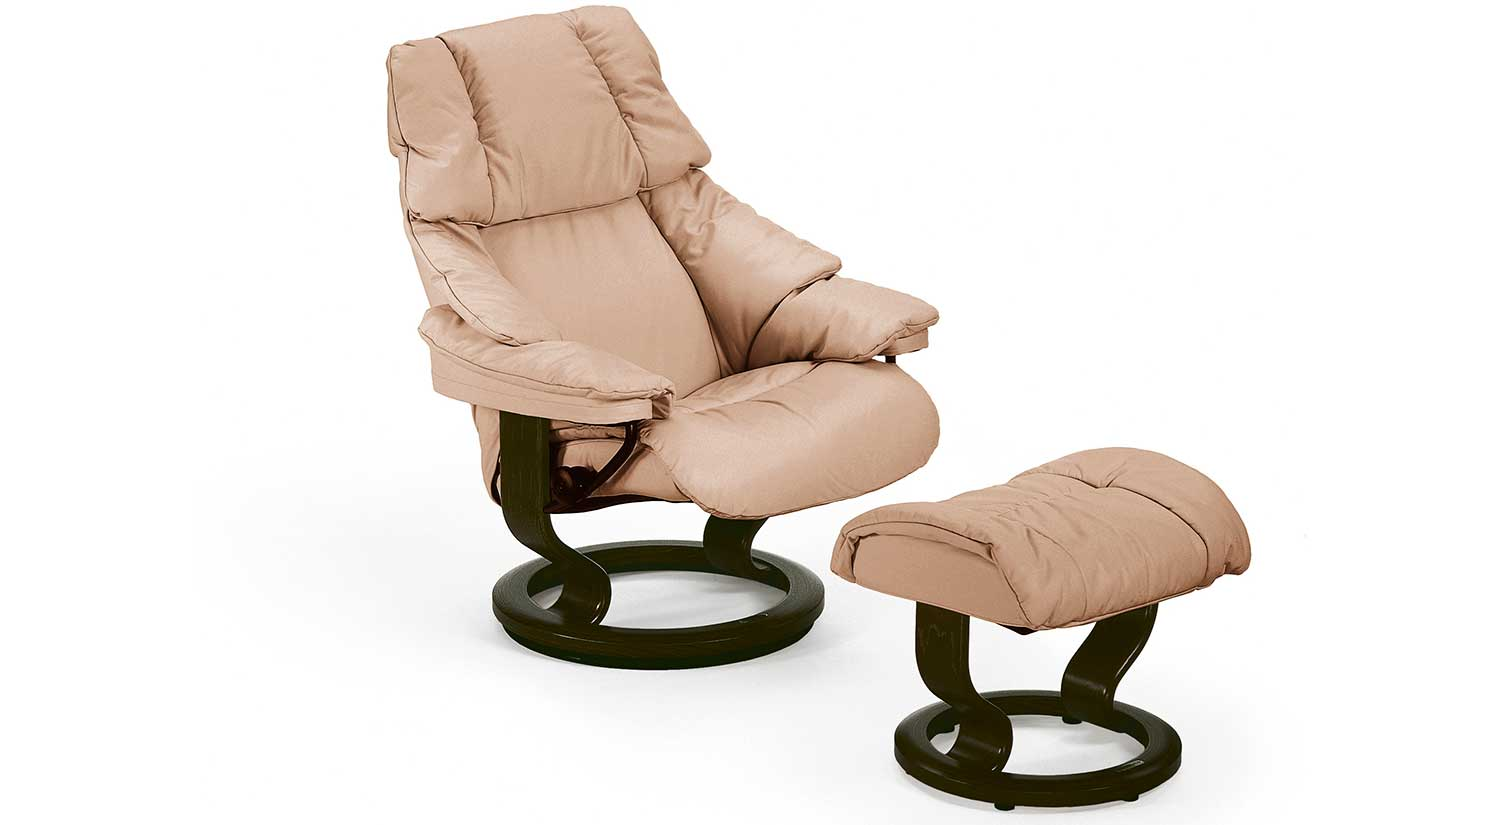 Reno Stressless Chair and Otto